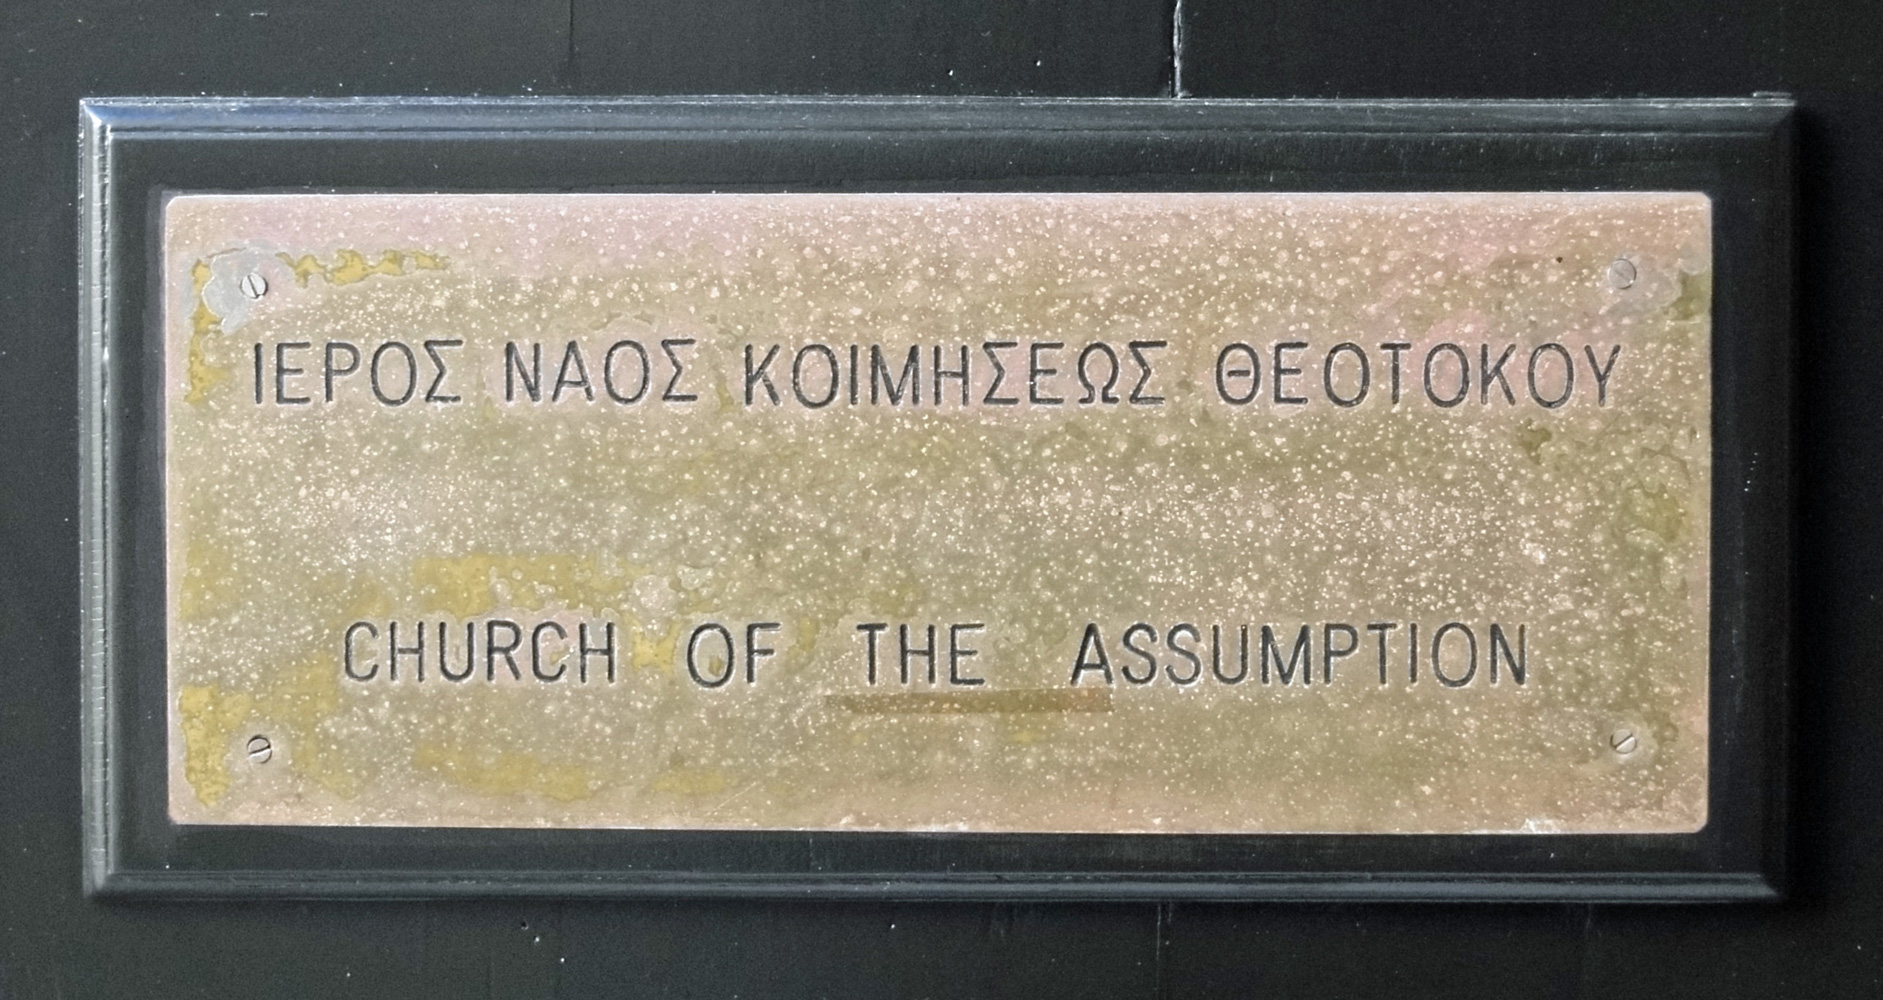 Close up of the sign for the Church of the Assumption